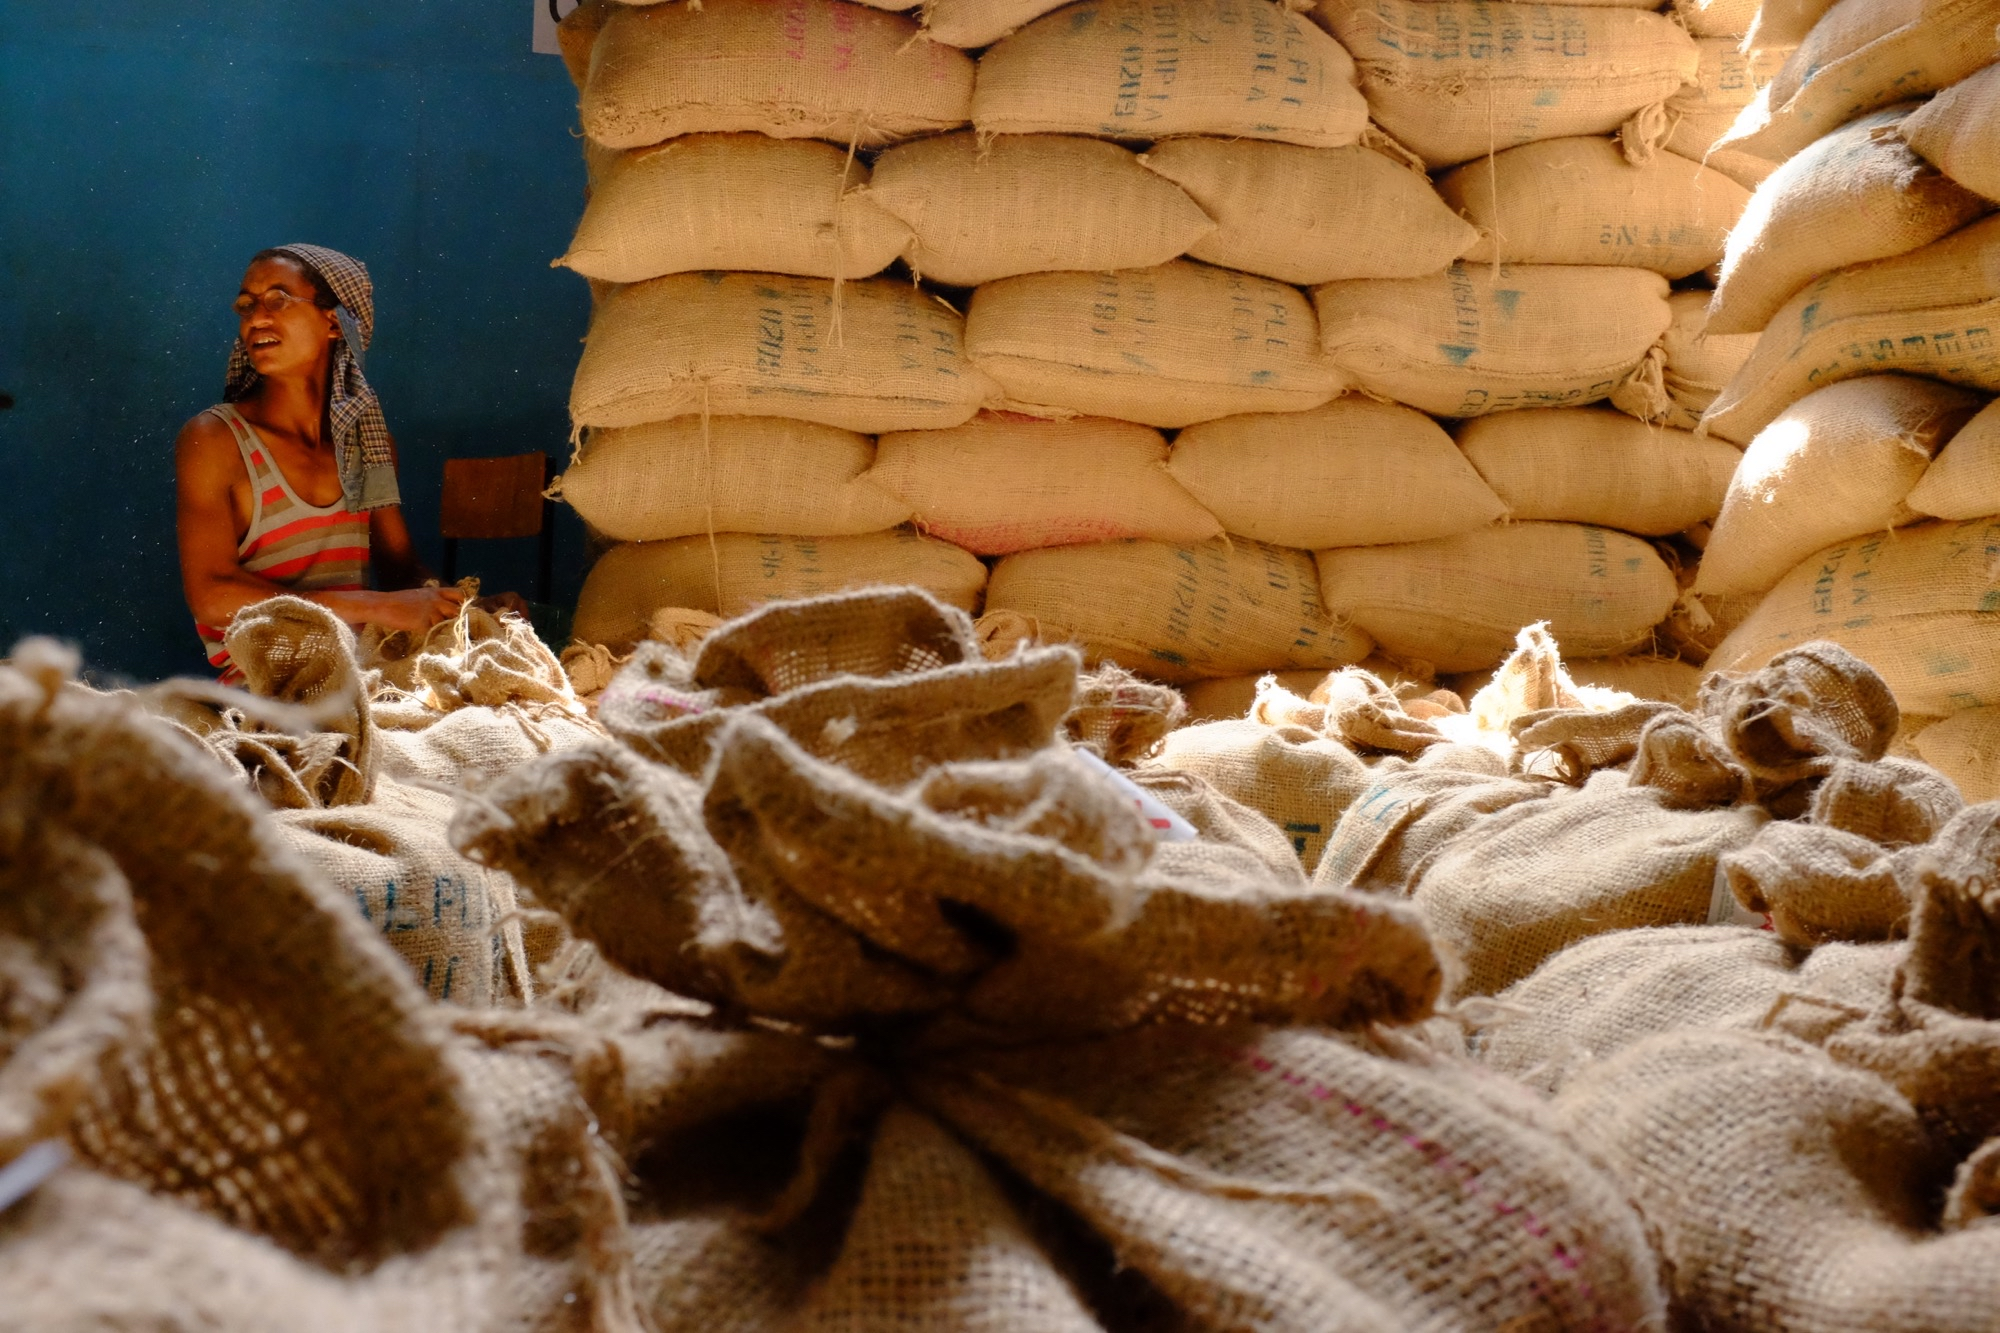 Bags of coffee being packed in an Addis Ababa export warehouse, to be shipped to the port of Oakland.